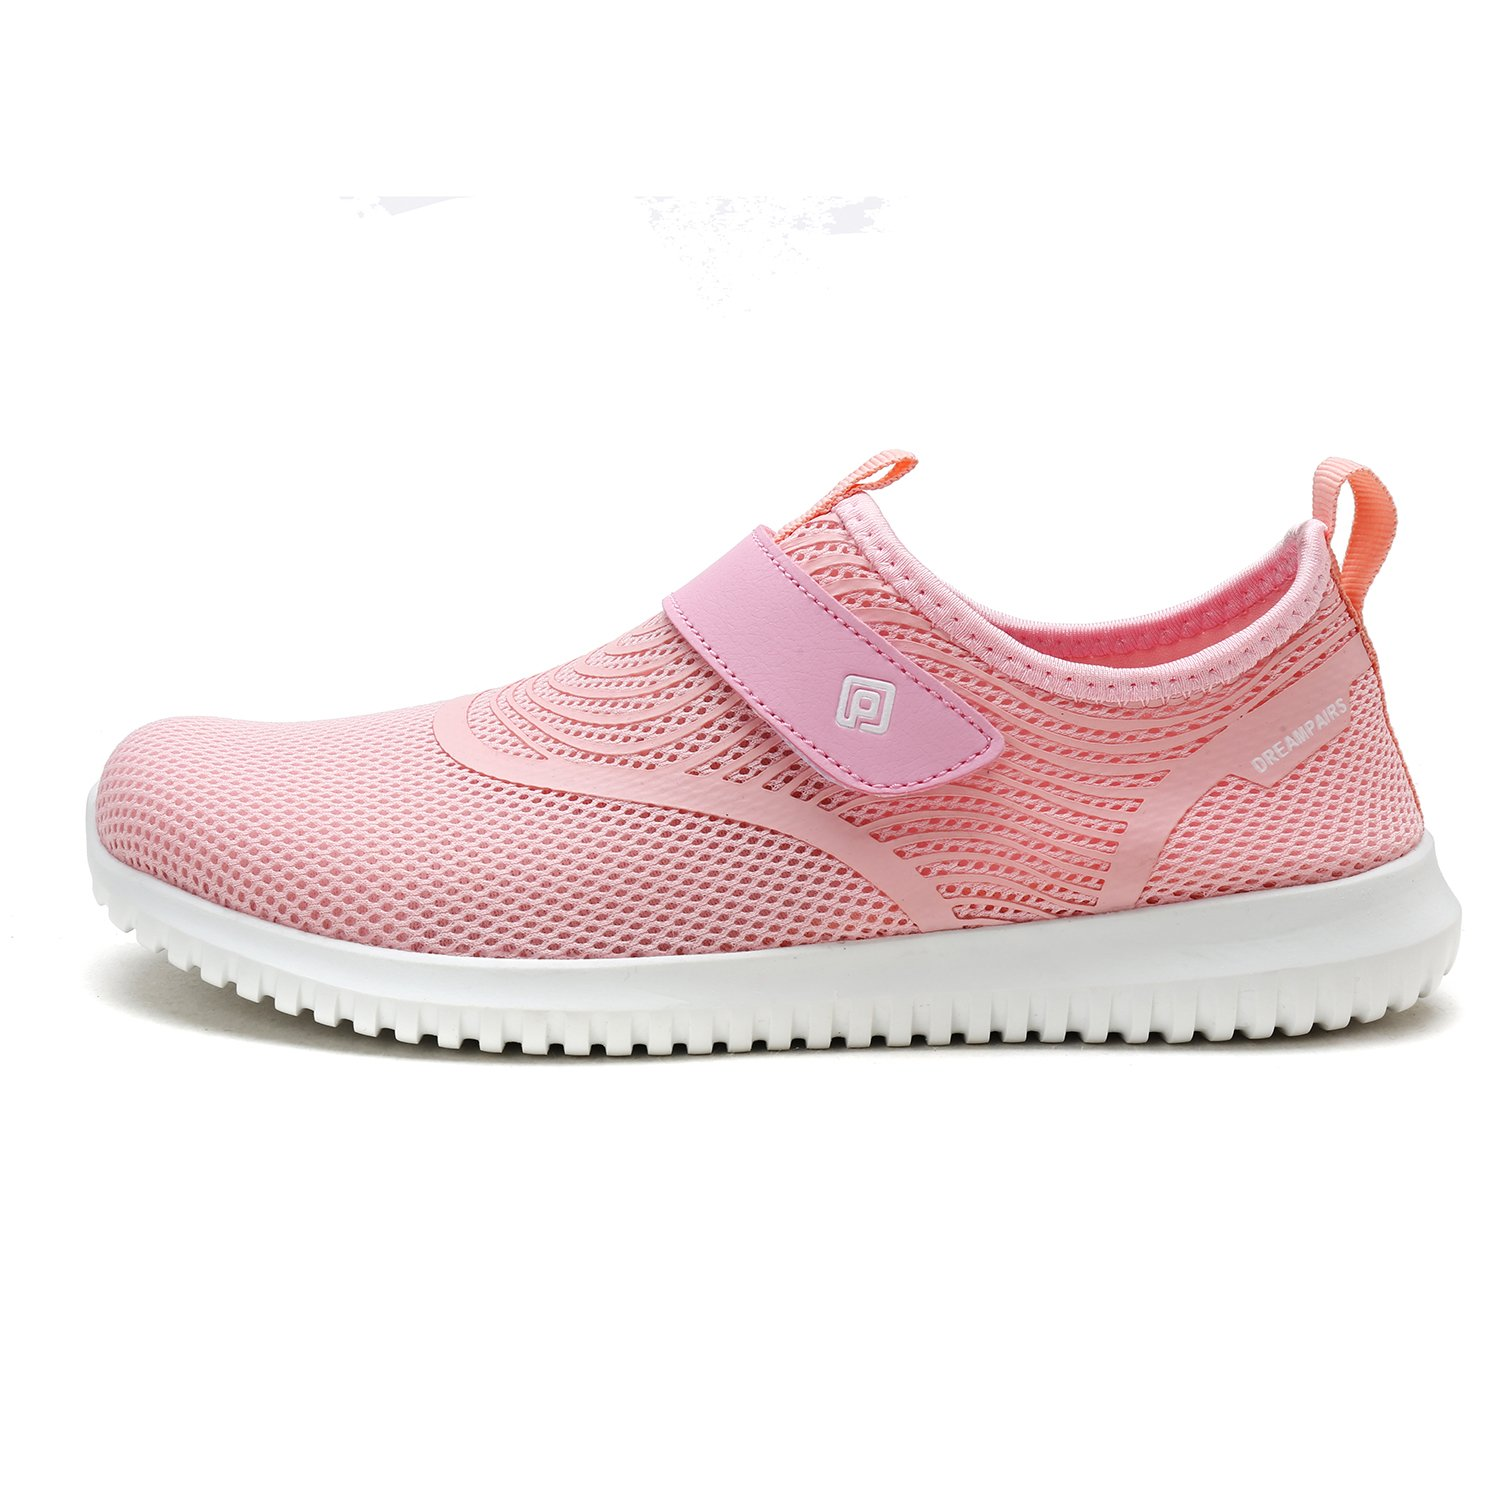 2e5d23af20aa2 ... DREAM PAIRS Quick-Dry Water Water Water Shoes Sports Walking Casual  Sneakers for Women B07886D374 ...